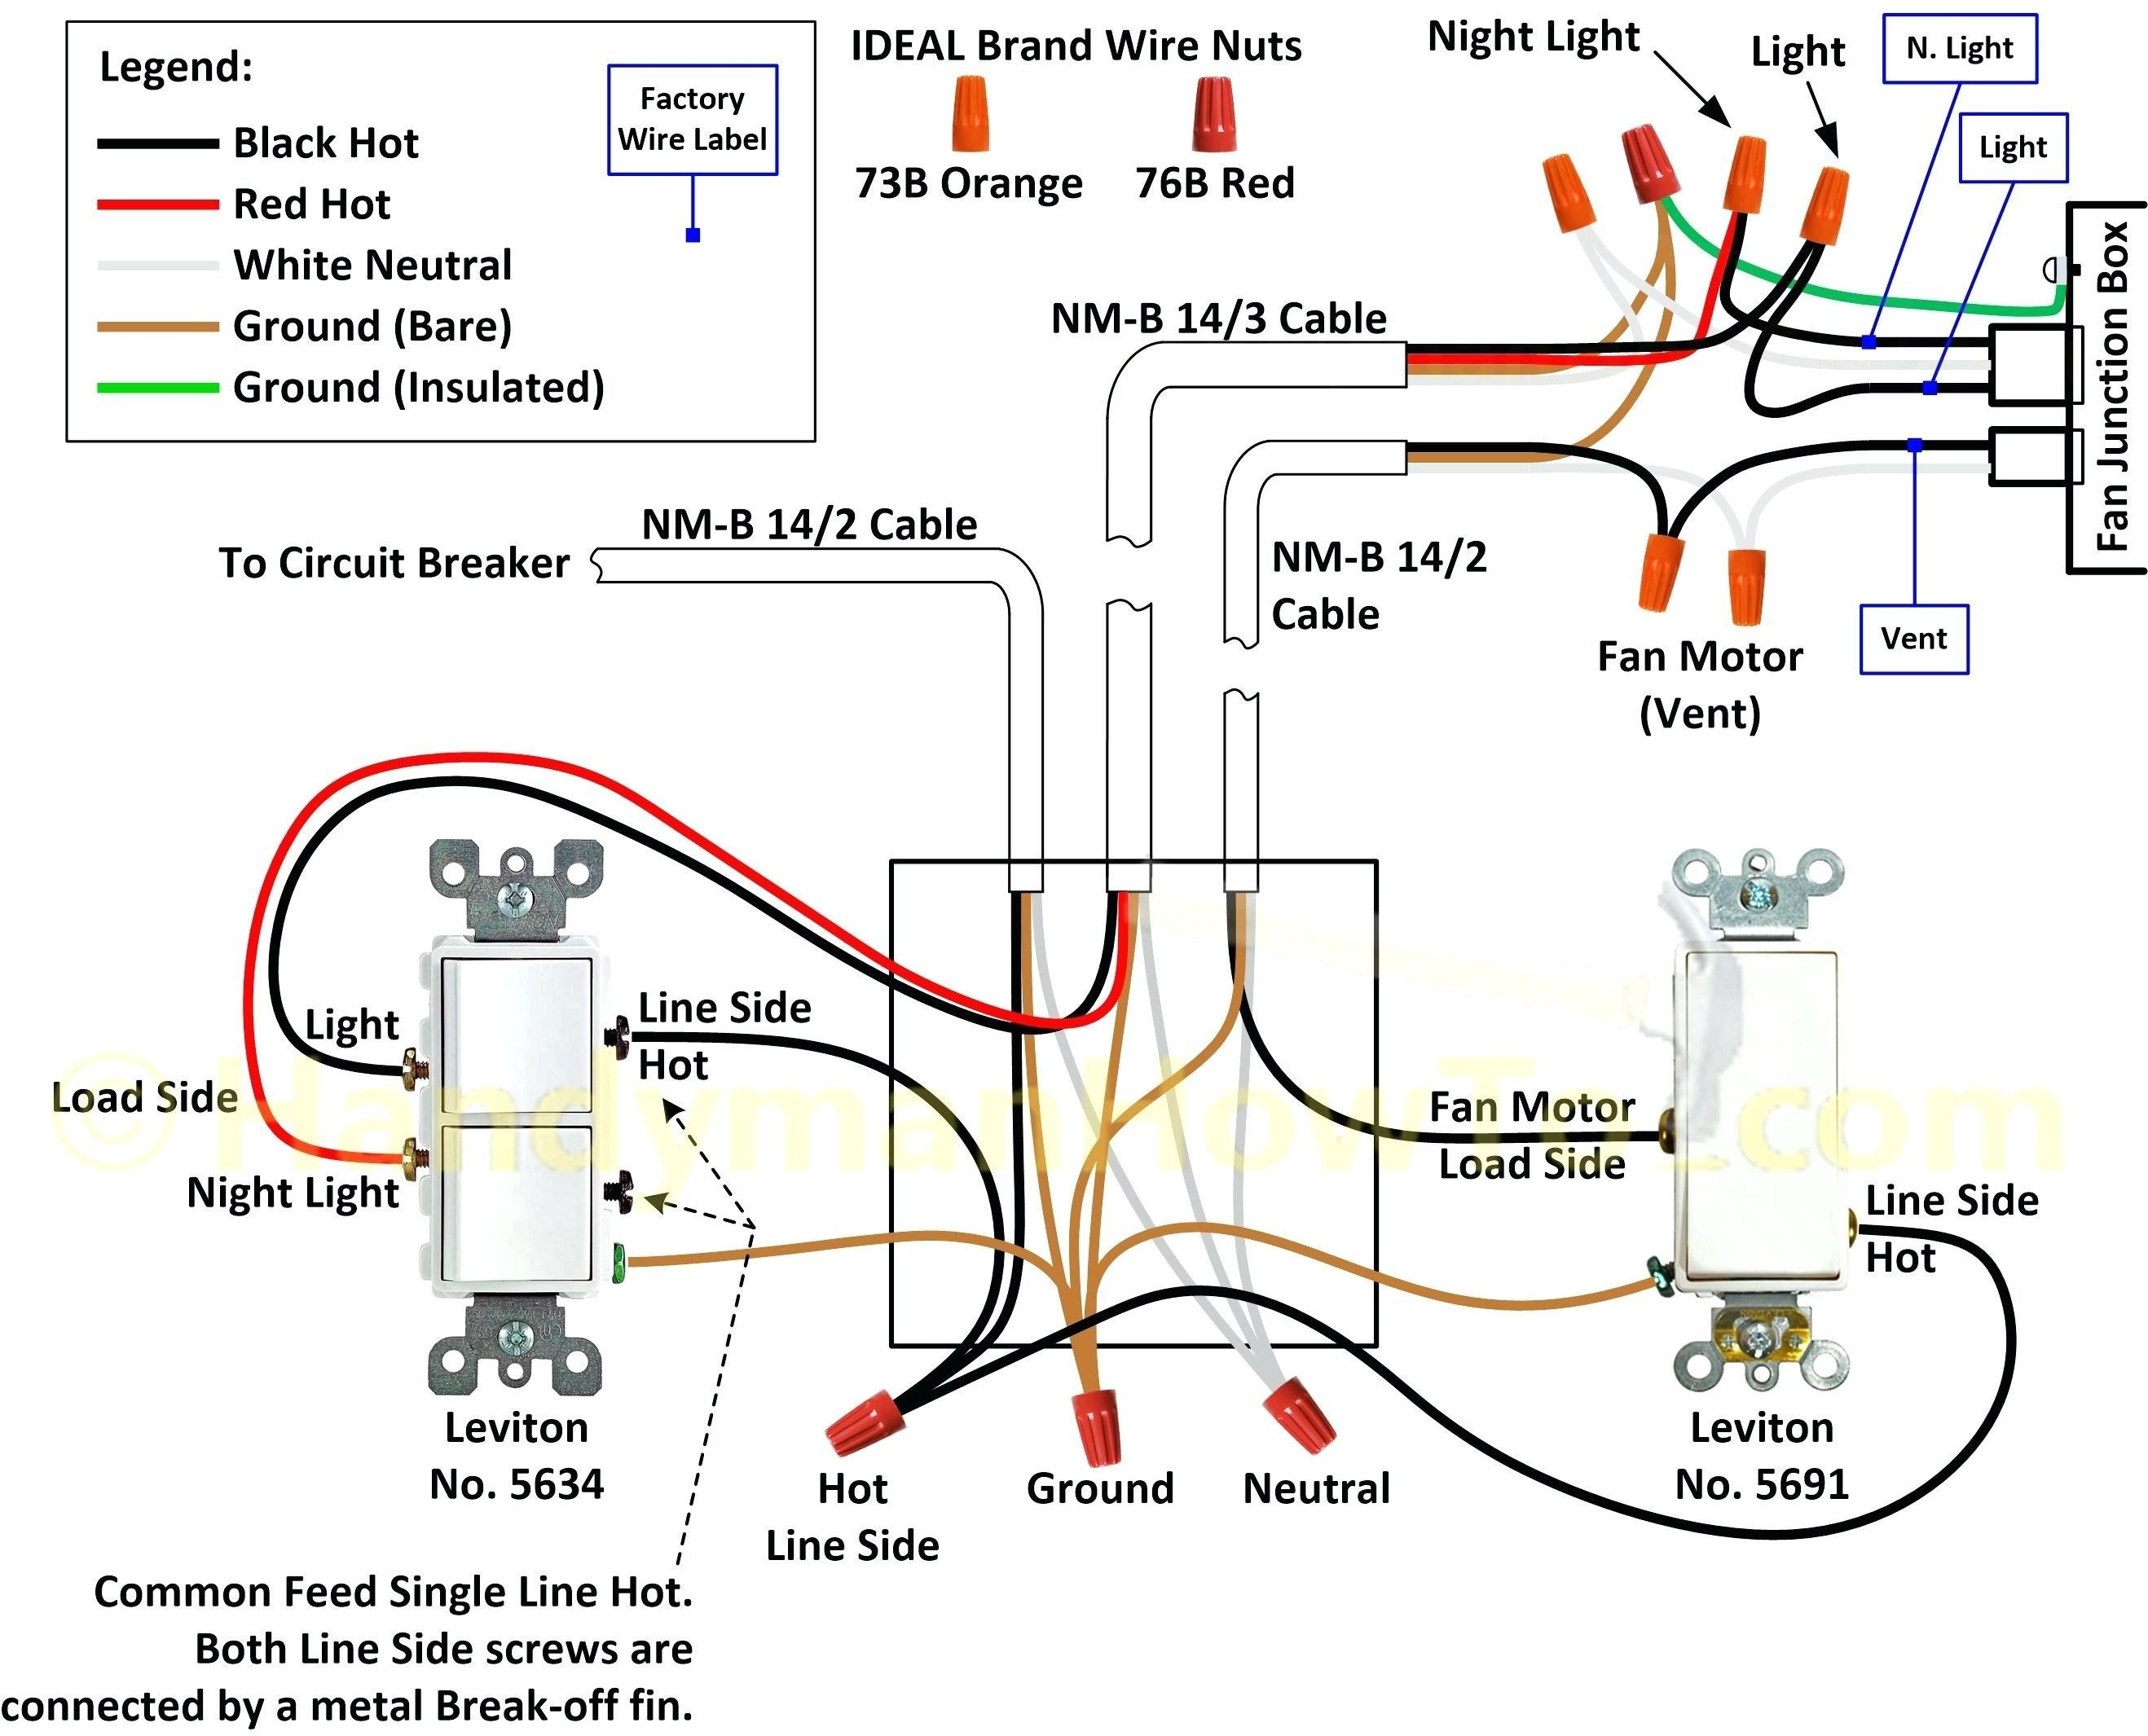 19 Great Ideas Of Wiring Diagram For 3 Way Switch With 2 Lights For You Ceiling Fan Switch Ceiling Fan Wiring Light Switch Wiring